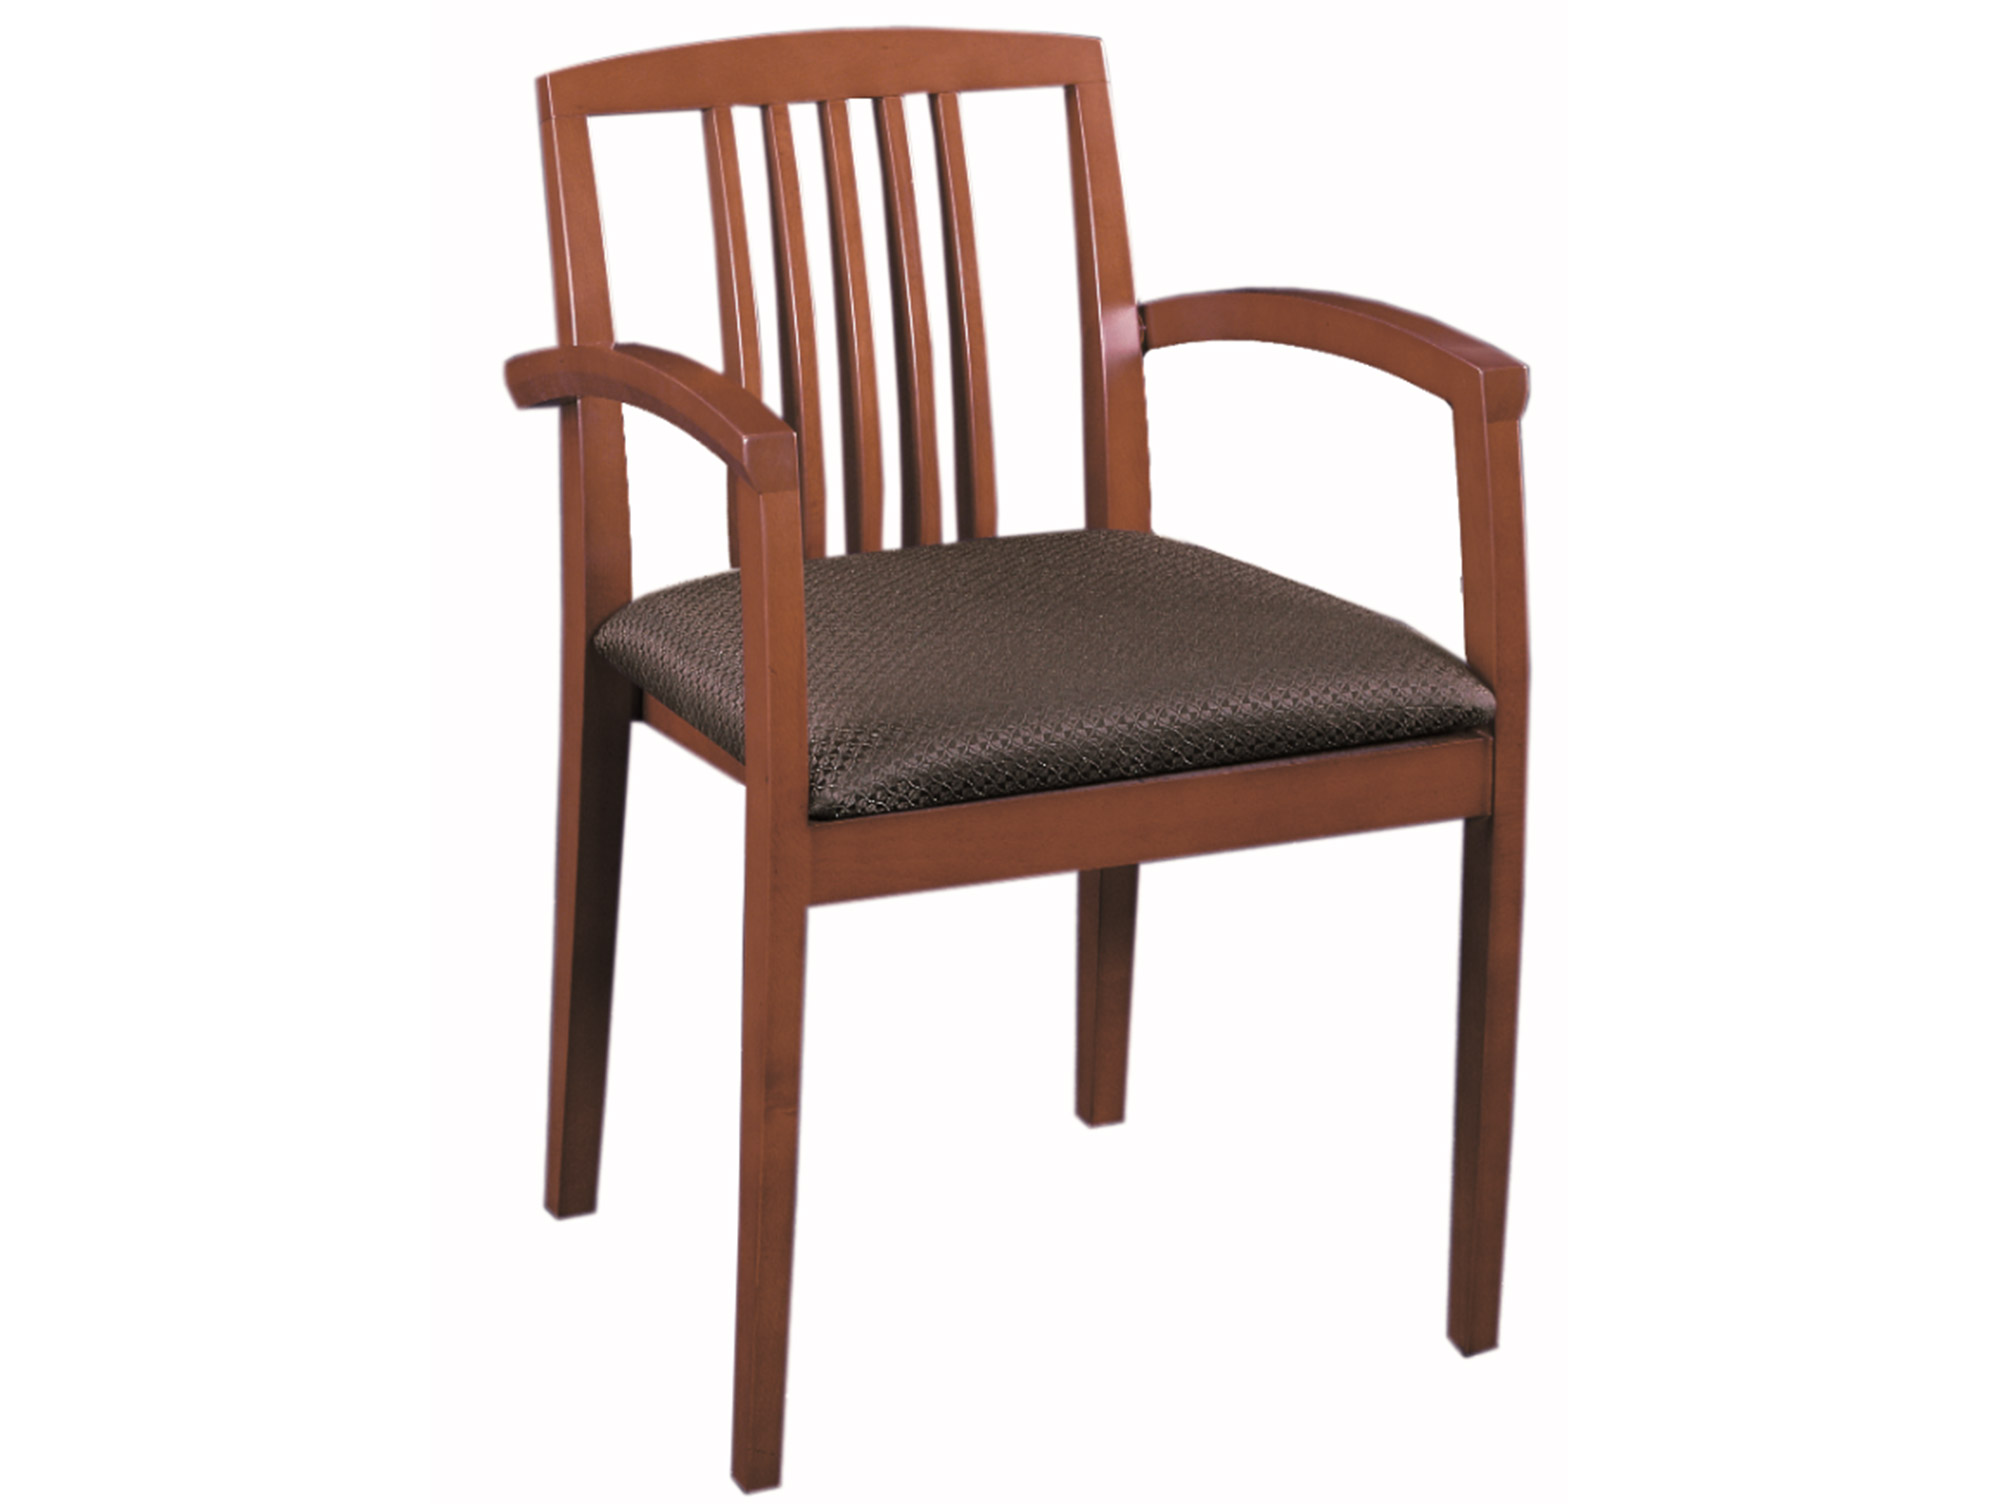 wooden office chairs  office visitor chairs  chairs for office - wooden office chairs  amber chairs for office